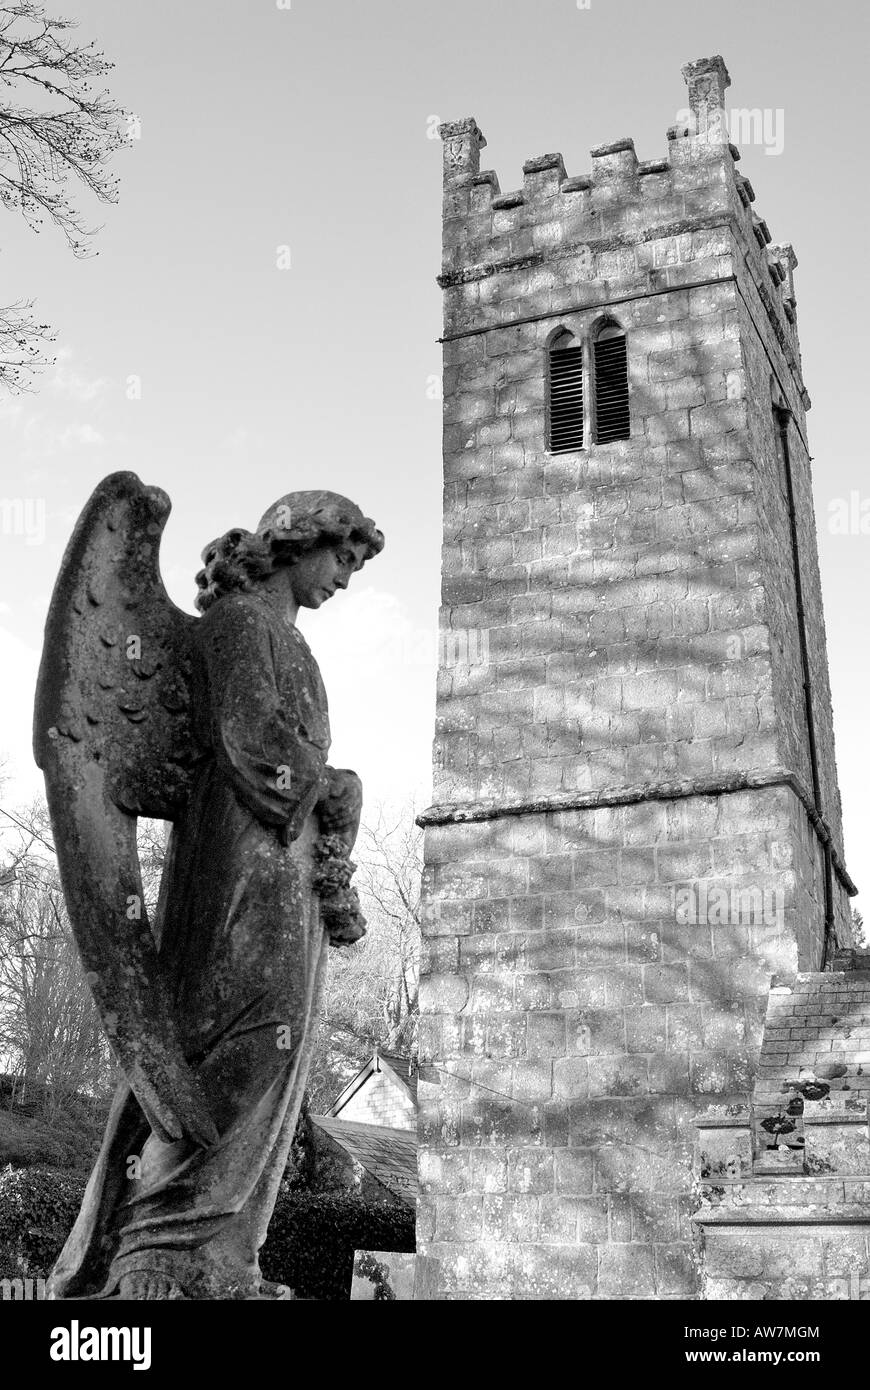 The tower of Holy Trinity church at Gidleigh on Dartmoor with a stone angel in the foreground in monochrome - Stock Image